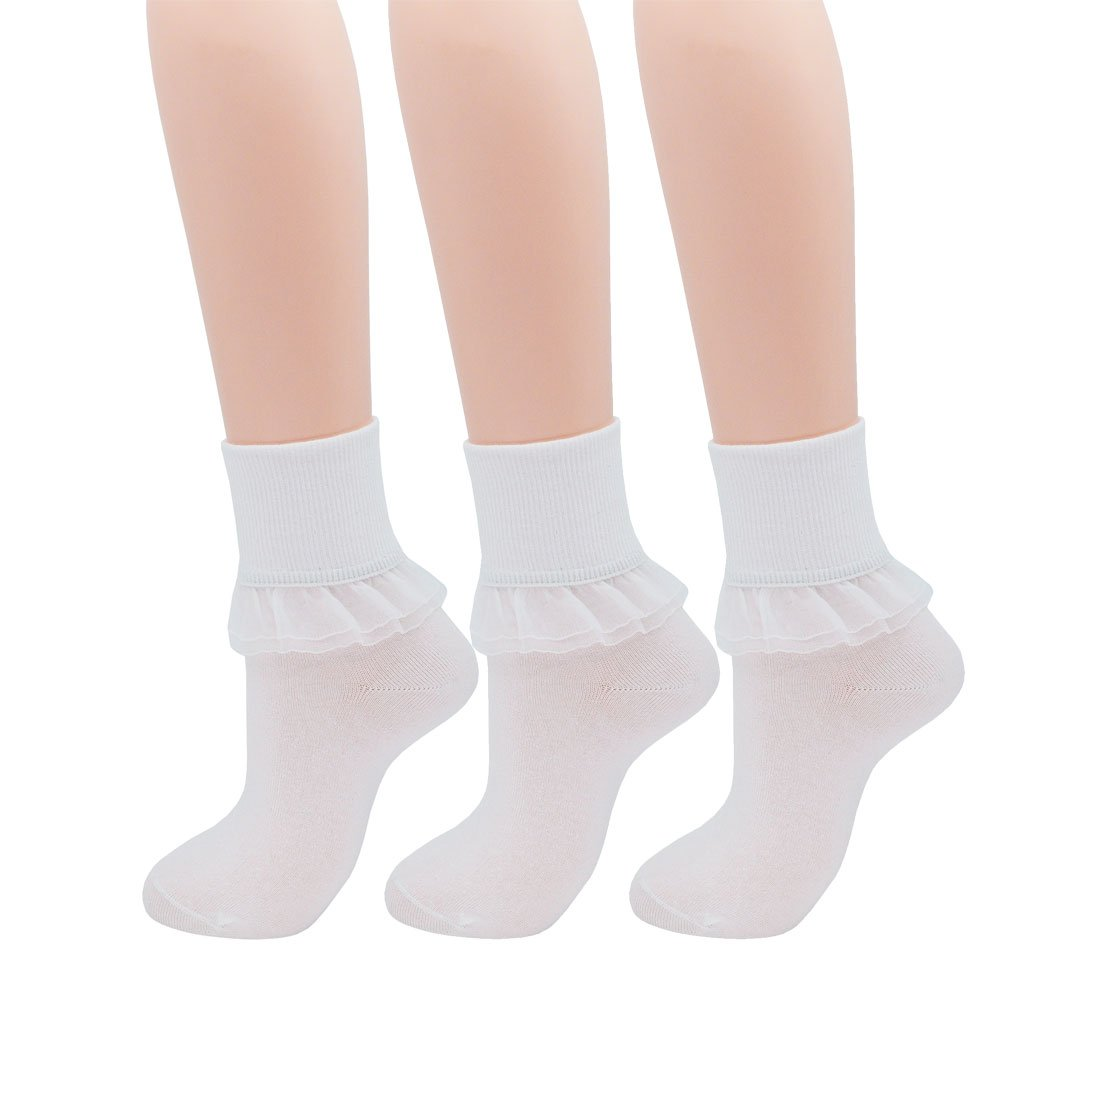 SRYL Women Lace Ruffle Frilly Ankle Socks Fashion Ladies Girl Princess YYS09 (white)